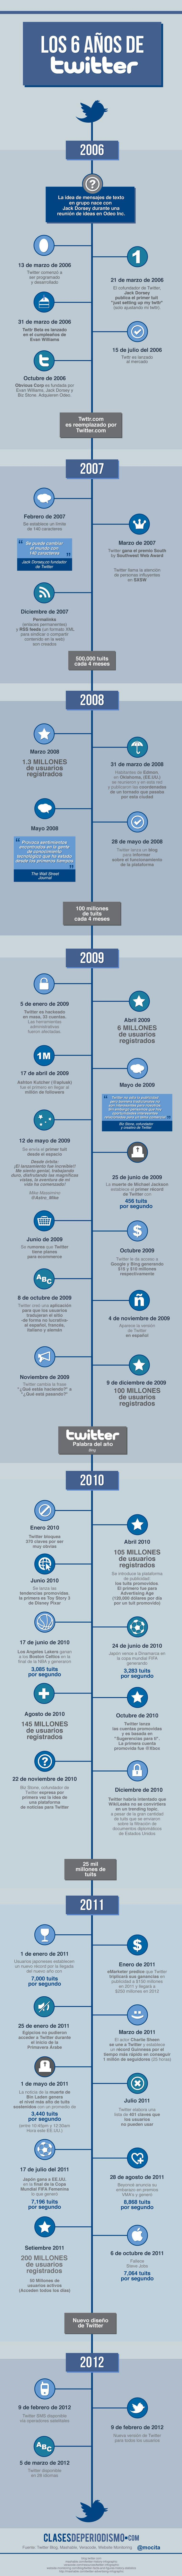 infografia seis anios twitter - blog acens the cloud hosting company